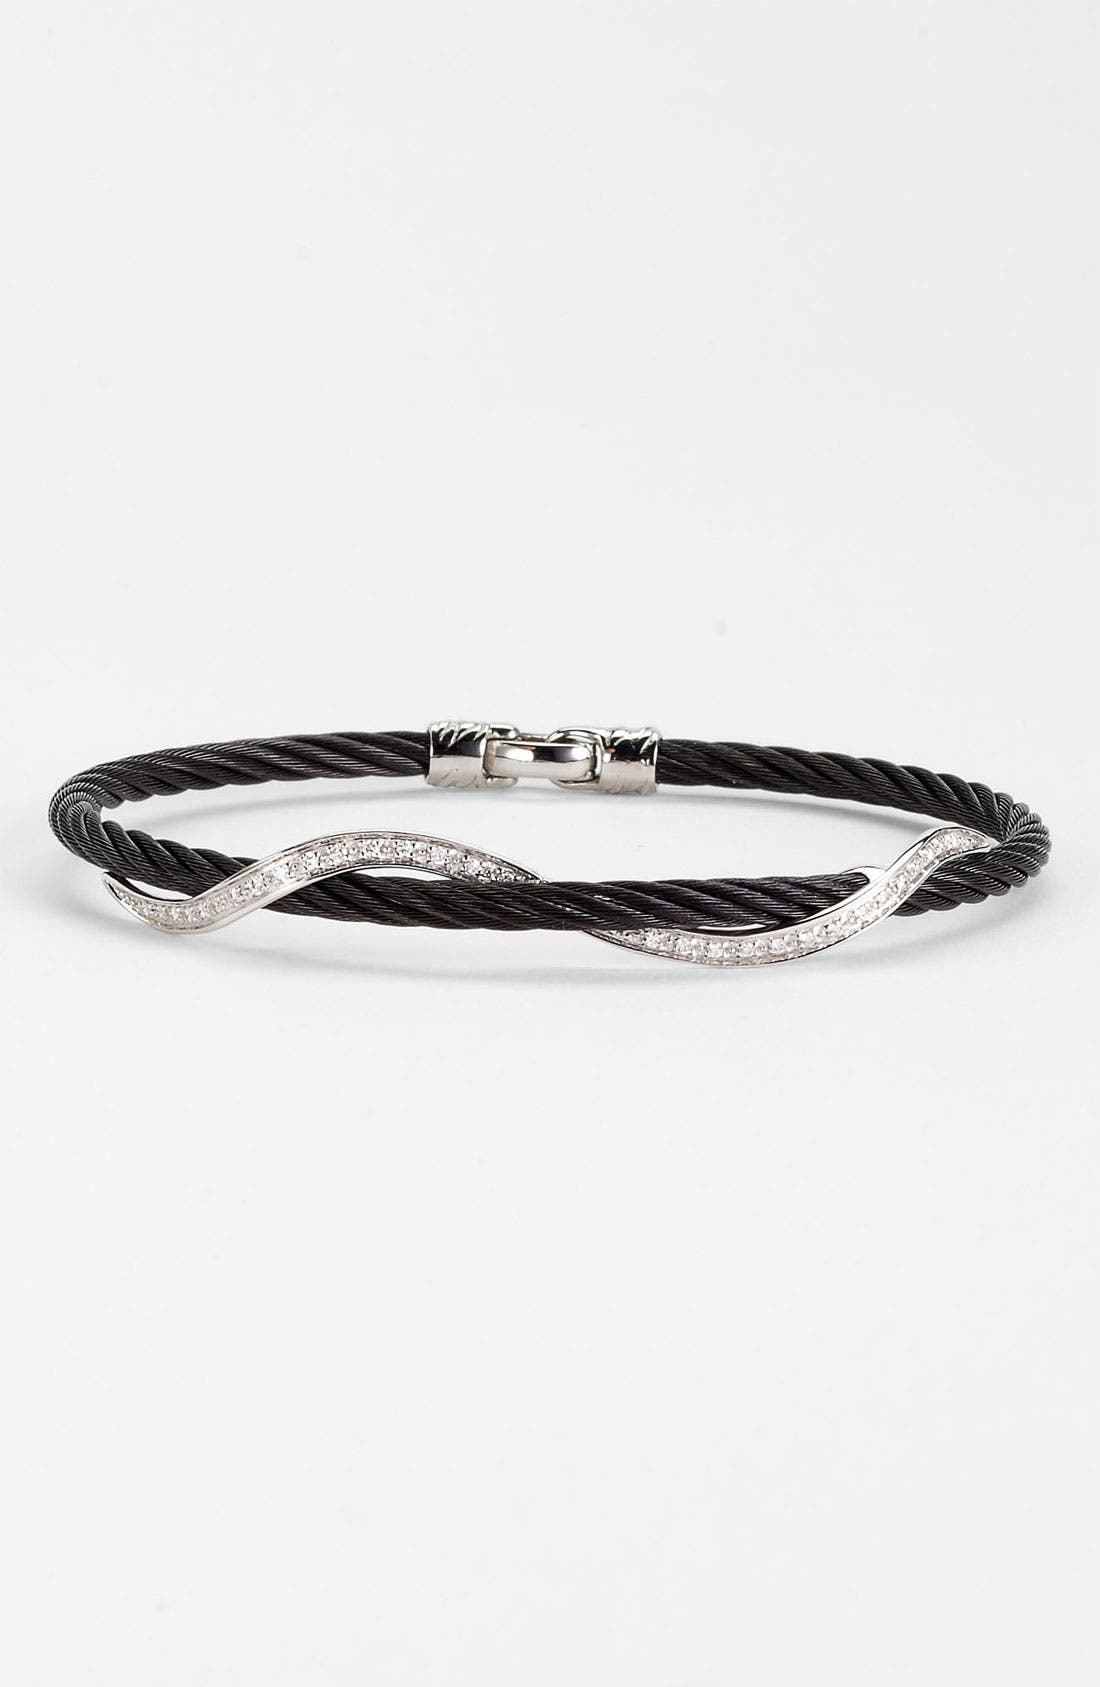 Main Image - ALOR® Diamond Twist Bracelet